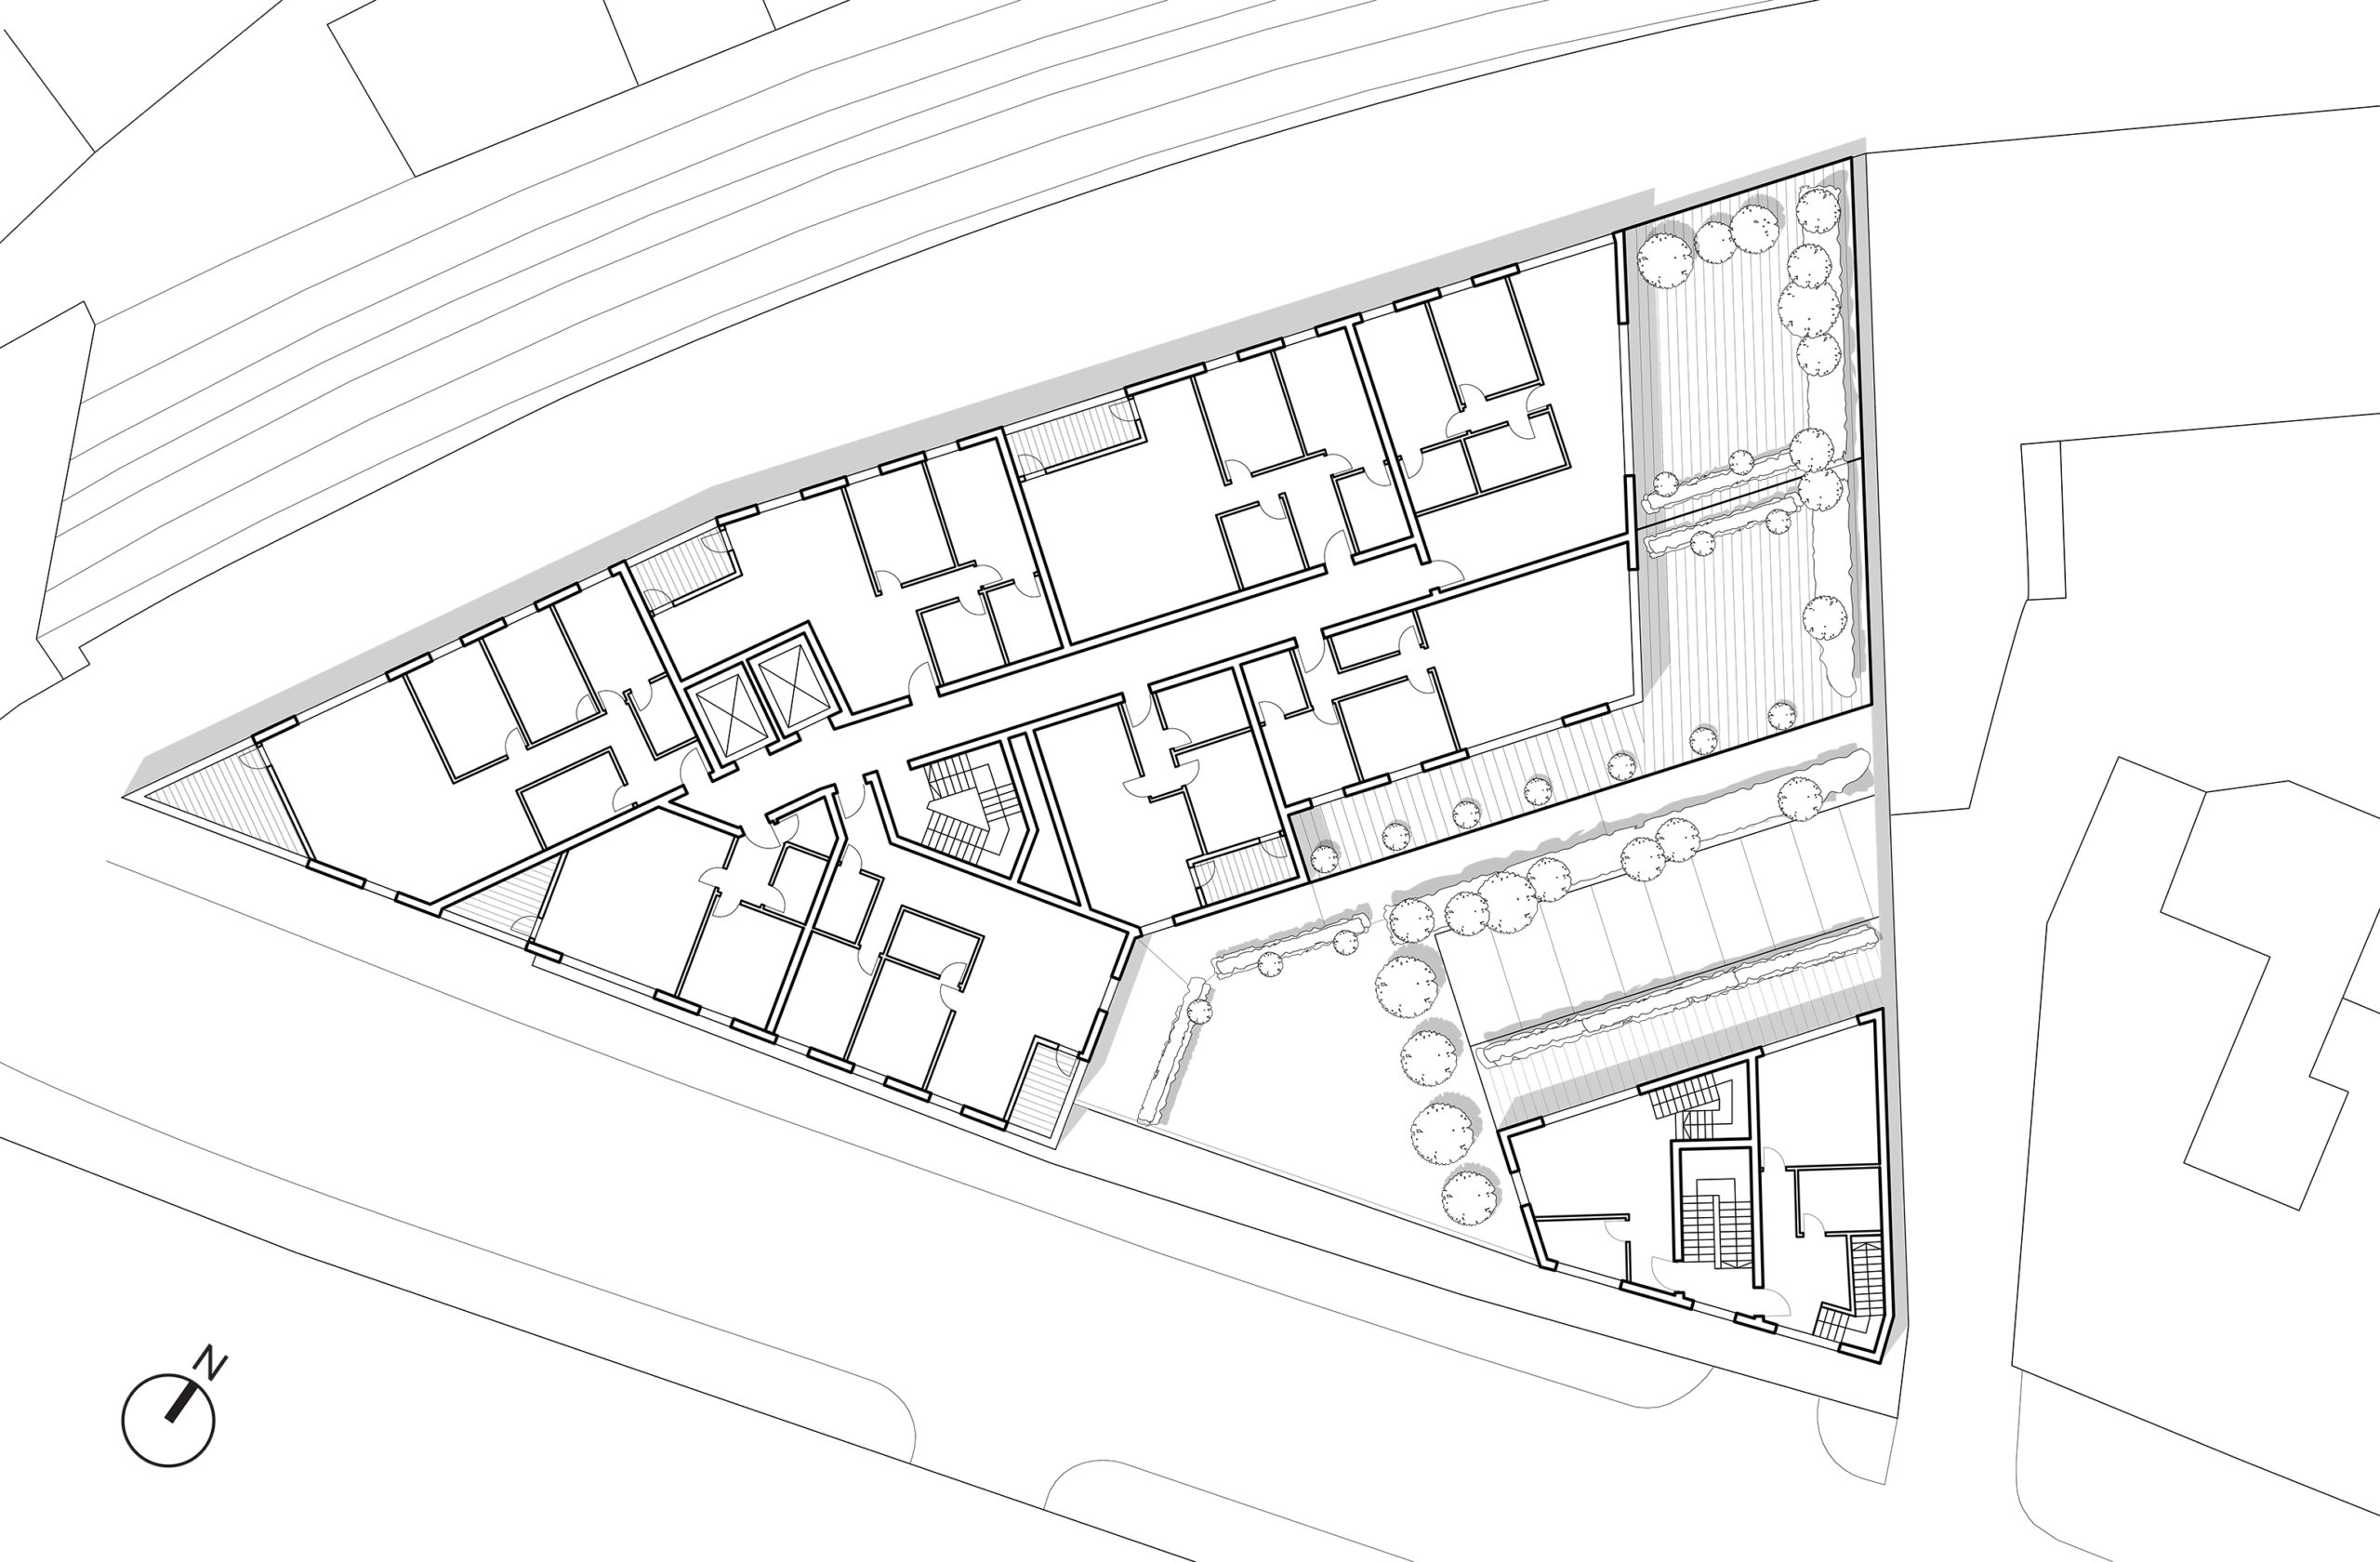 0020-p-typical-option4-3rd floor-HG [Recovered]_ [Recovered]____